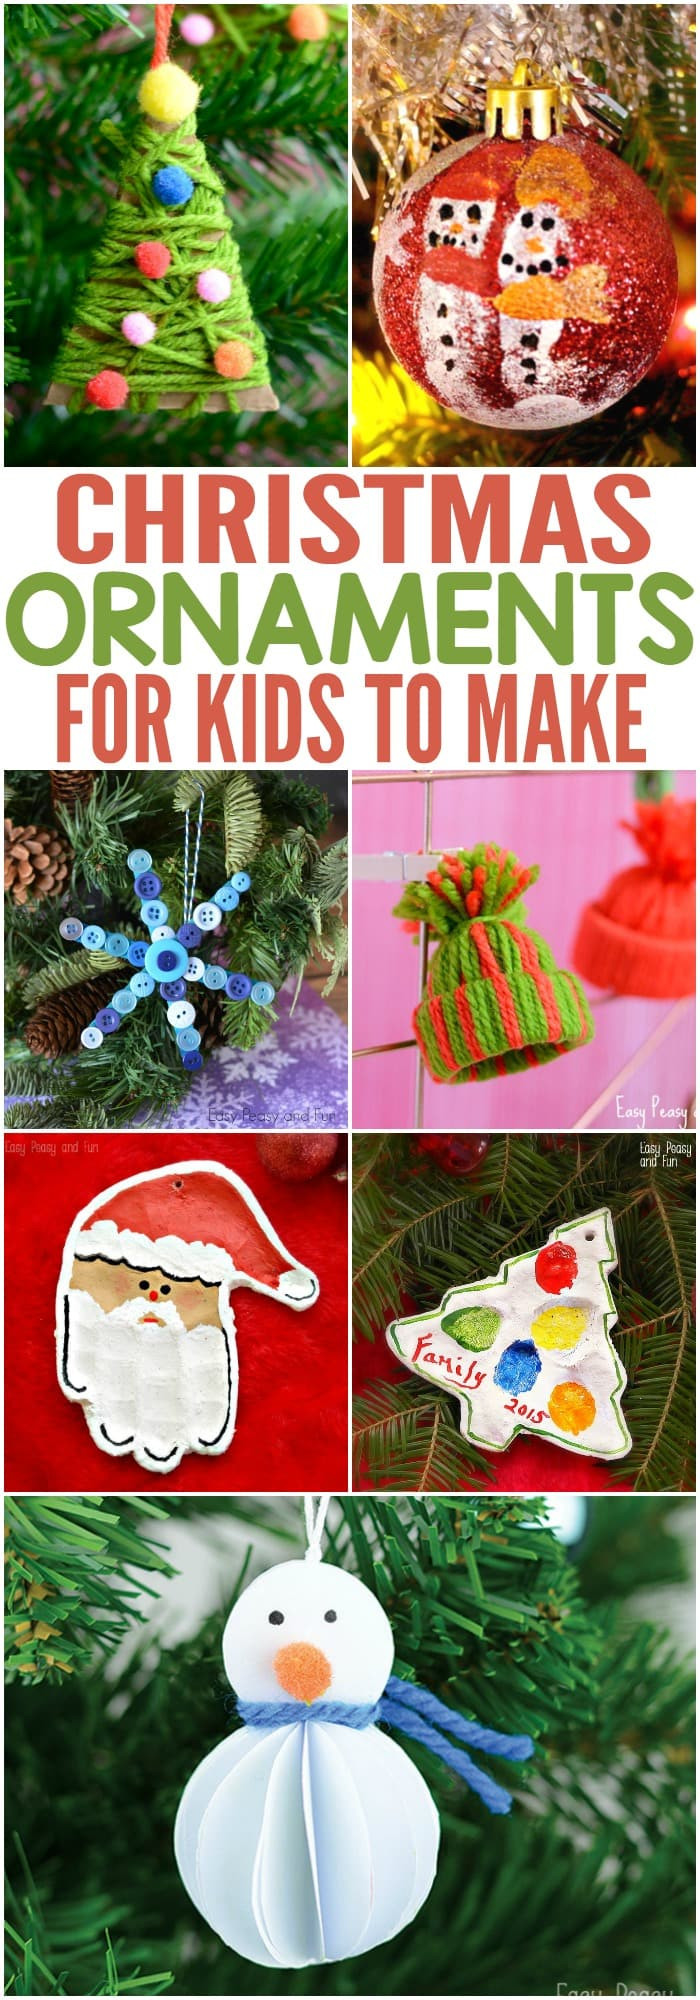 Best ideas about DIY Kids Ornaments . Save or Pin Jolly DIY Christmas Ornaments Ideas Homemade Memories Now.